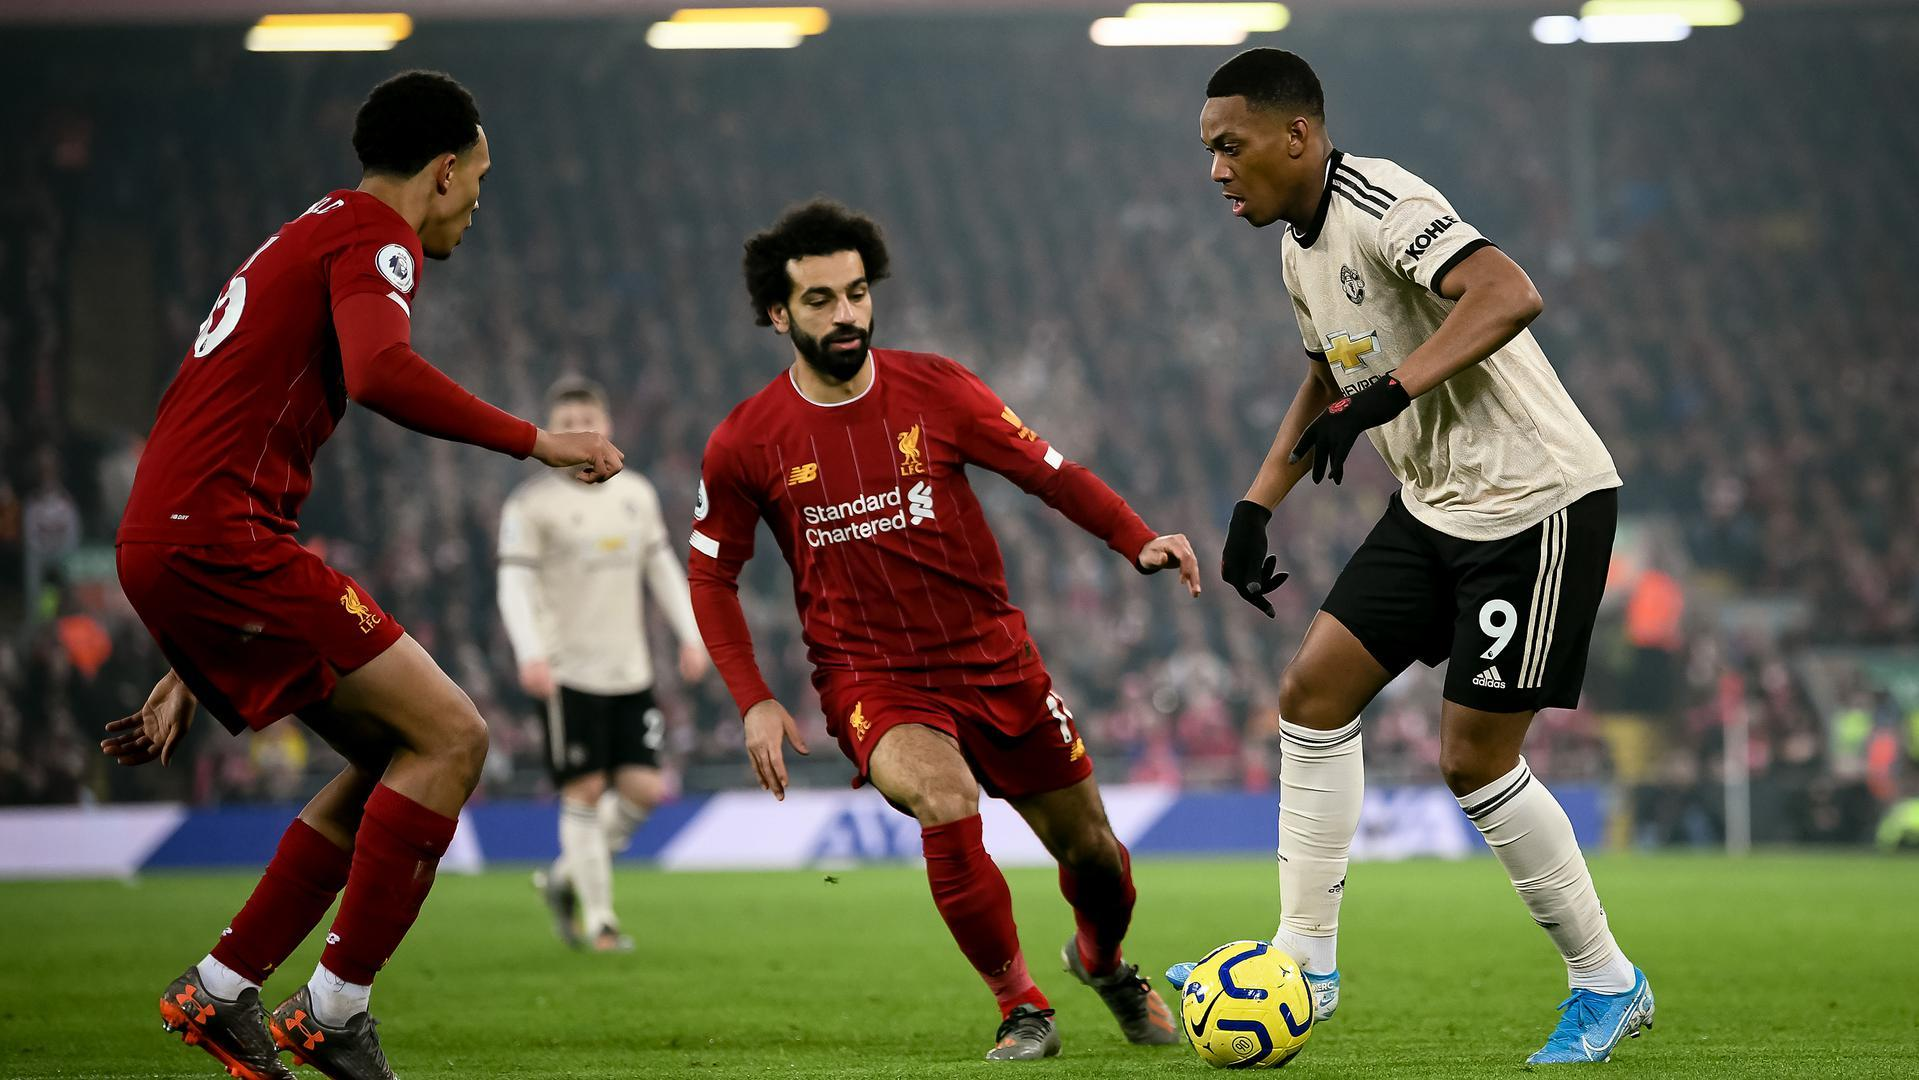 Manchester United vs Liverpool: betting and predictions